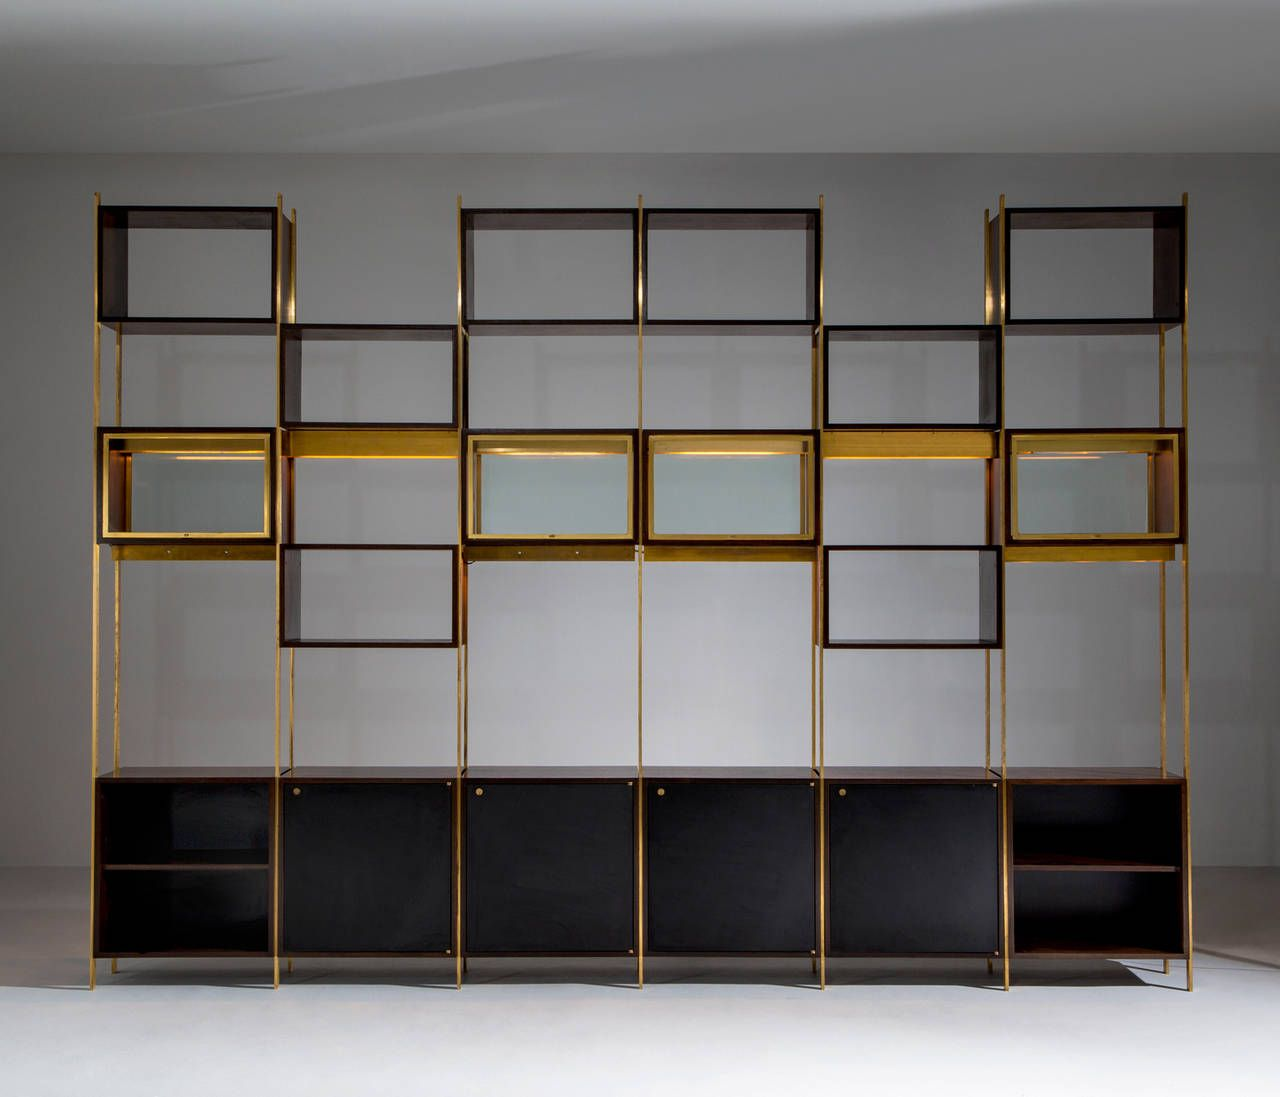 16 Enchanting Modern Entrance Designs That Boost The: Exceptional Rare Large Library Cabinet By Jules Wabbes